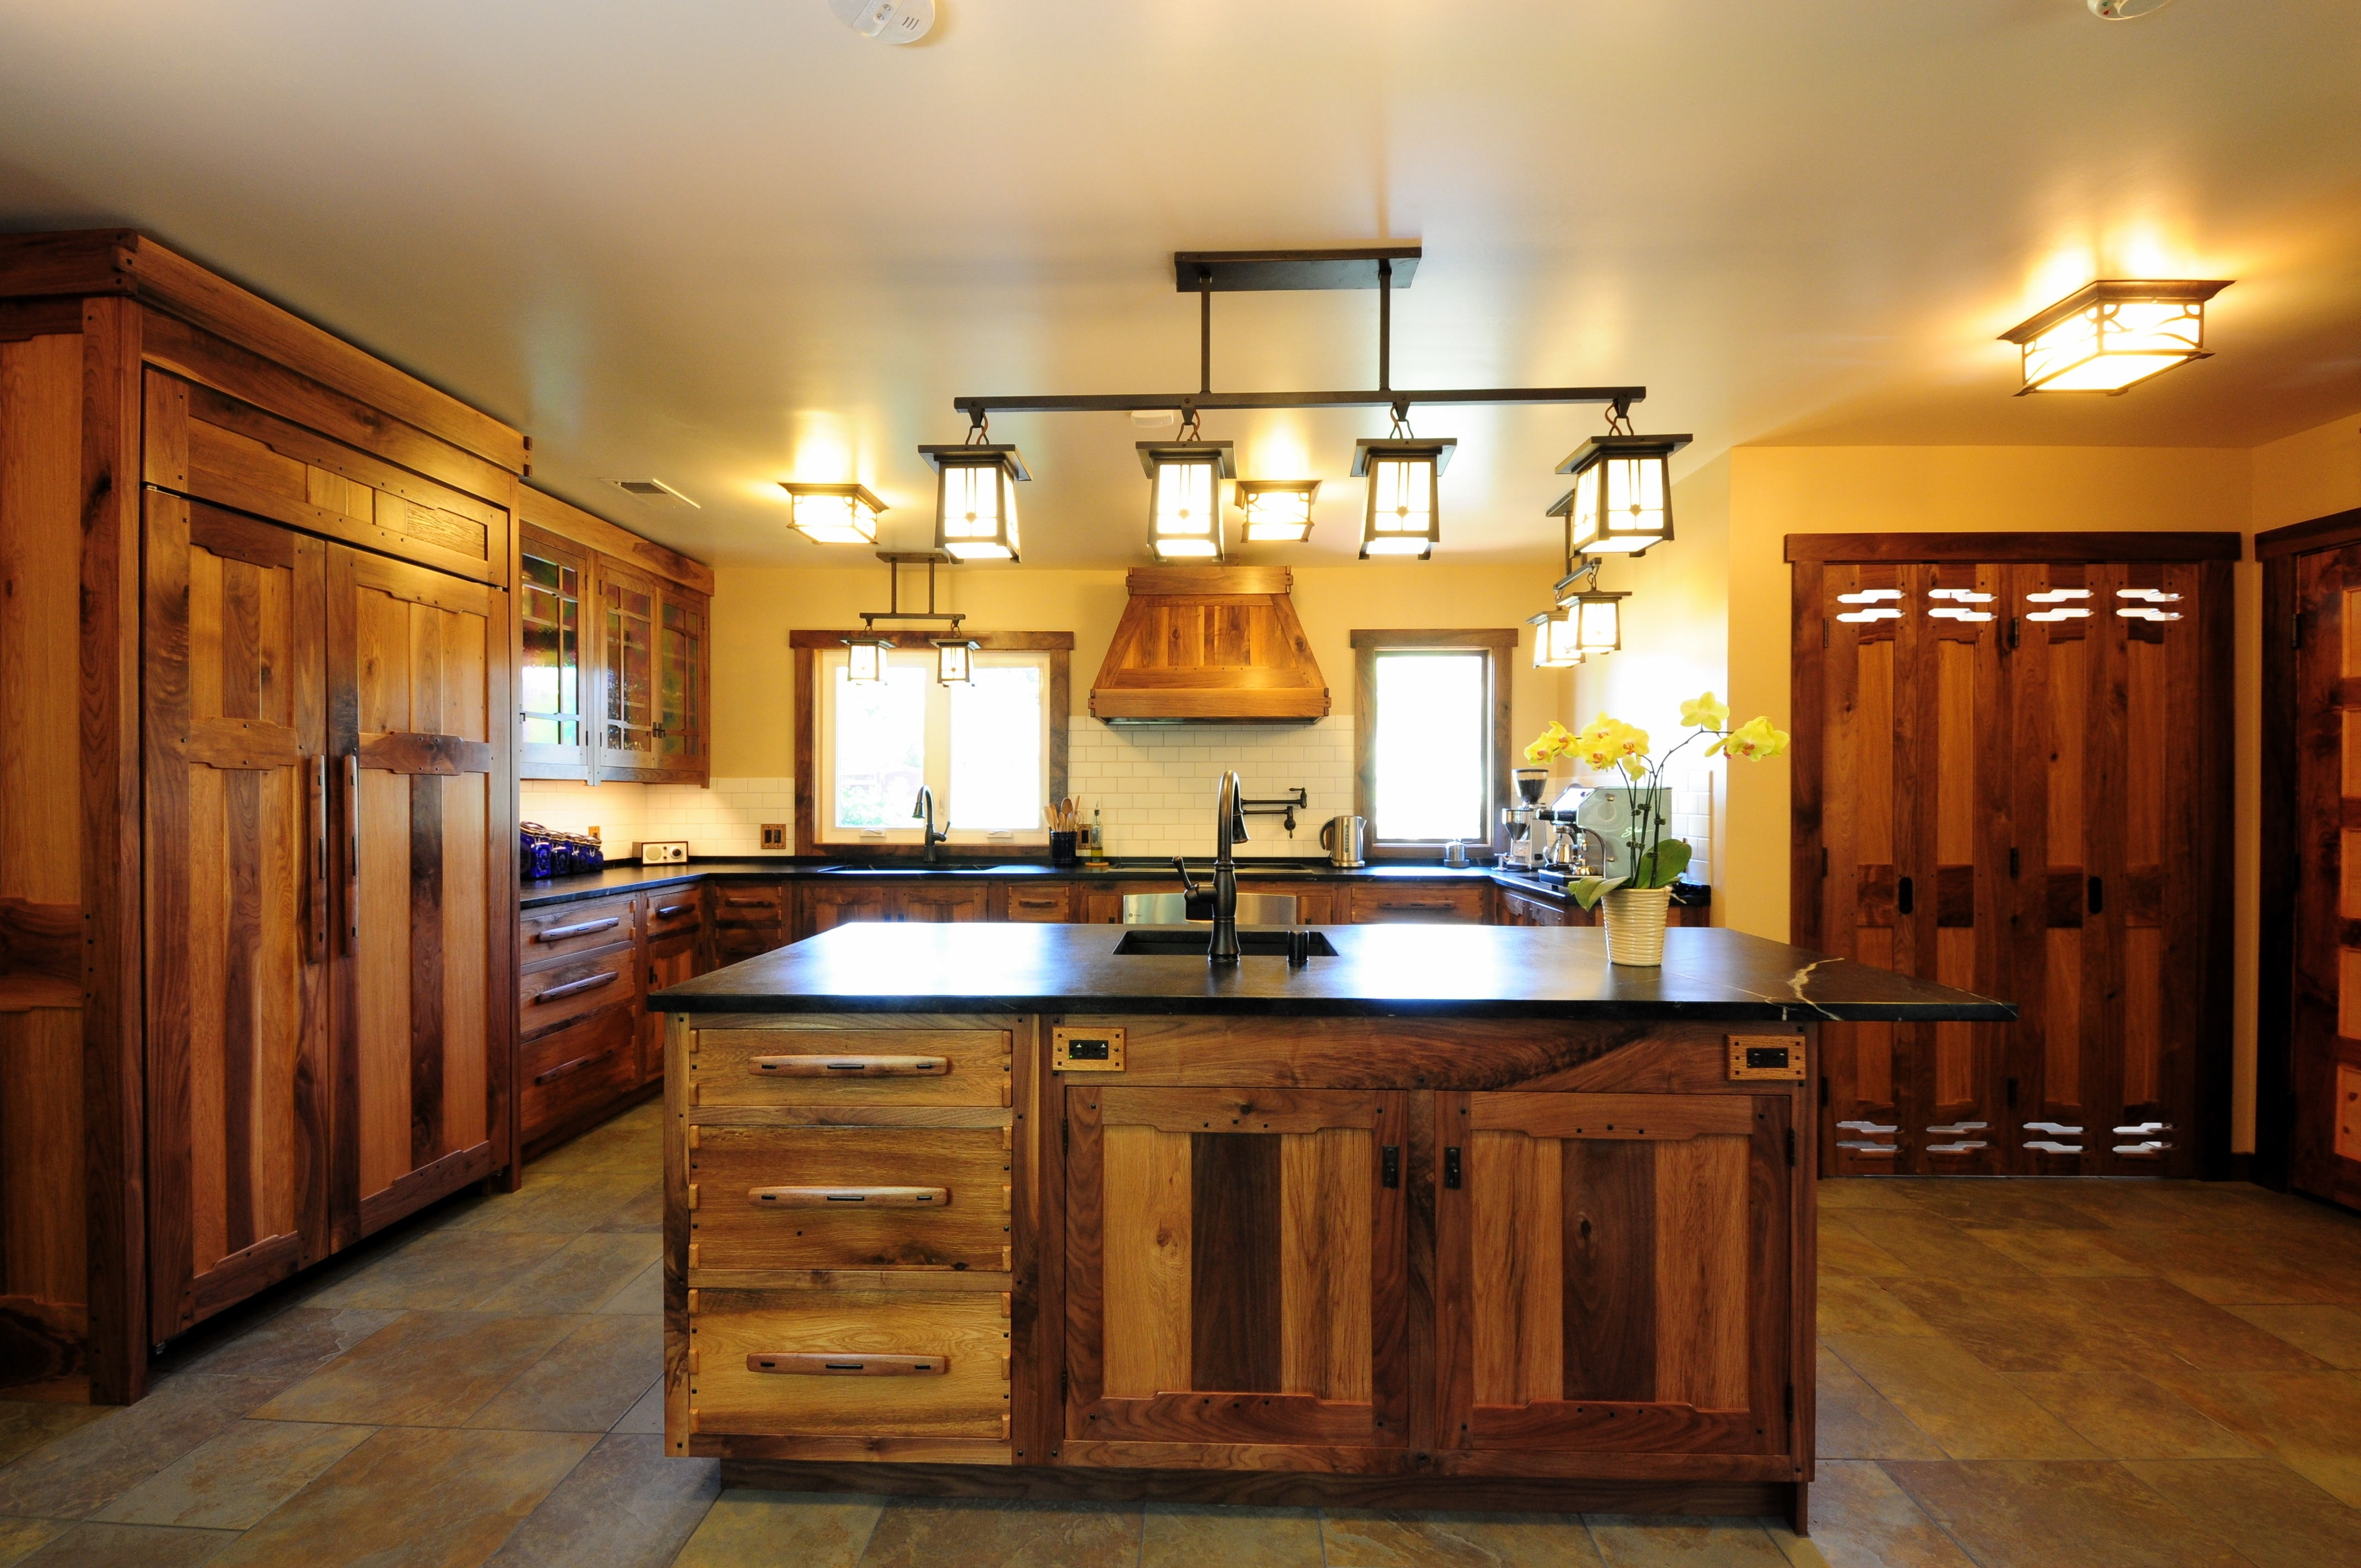 Current Small Rustic Kitchen Chandeliers Intended For Awesome Country Kitchen Cabinets Ideas With Rustic Kitchen Island (View 3 of 15)